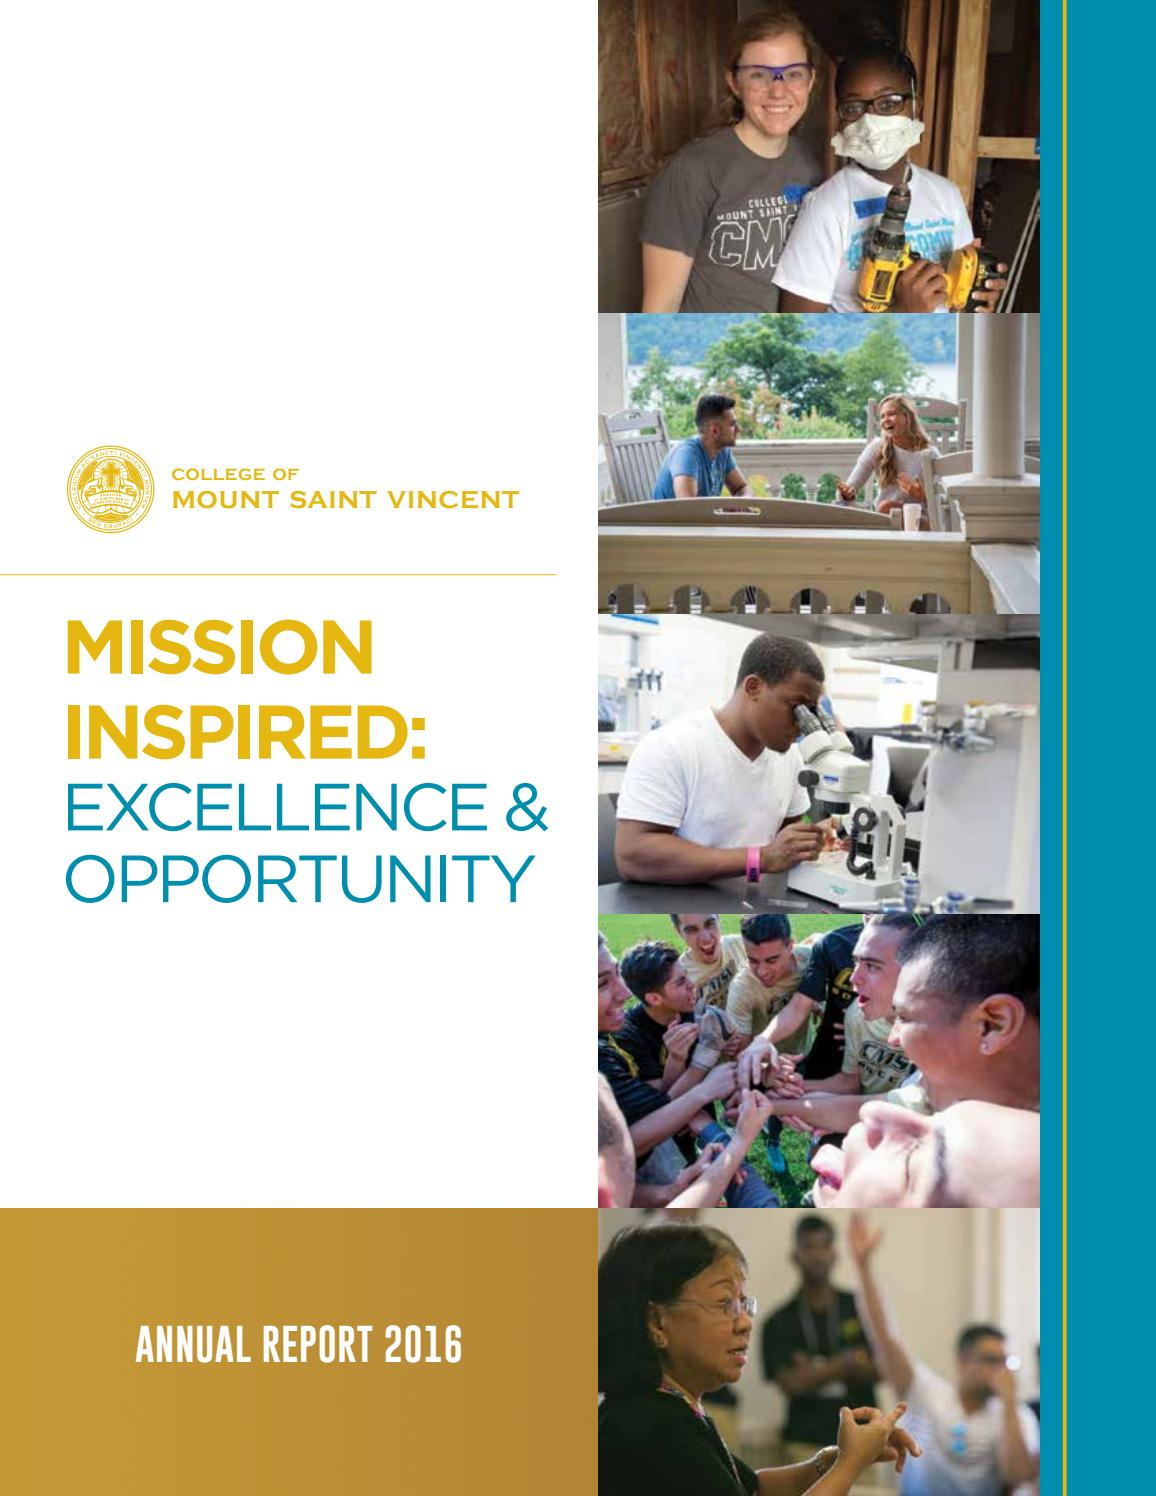 Annual Report 2016 by College of Mount Saint Vincent - issuu